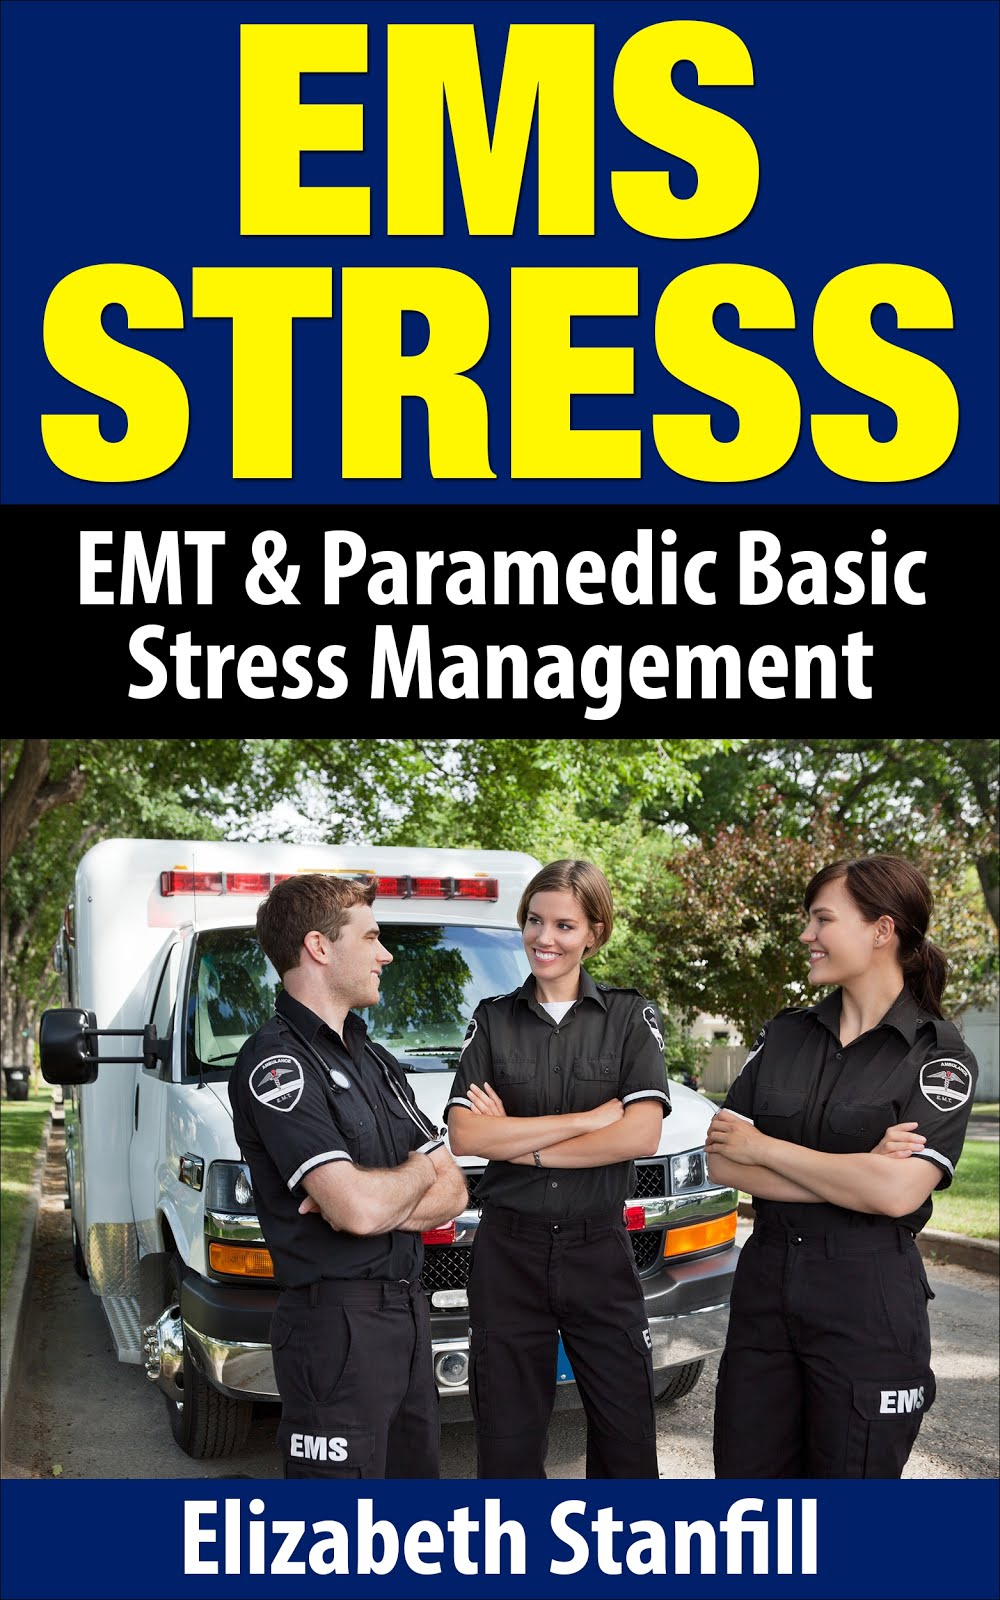 EMS STRESS: EMT & PARAMEDIC BASIC STRESS MANAGEMENT